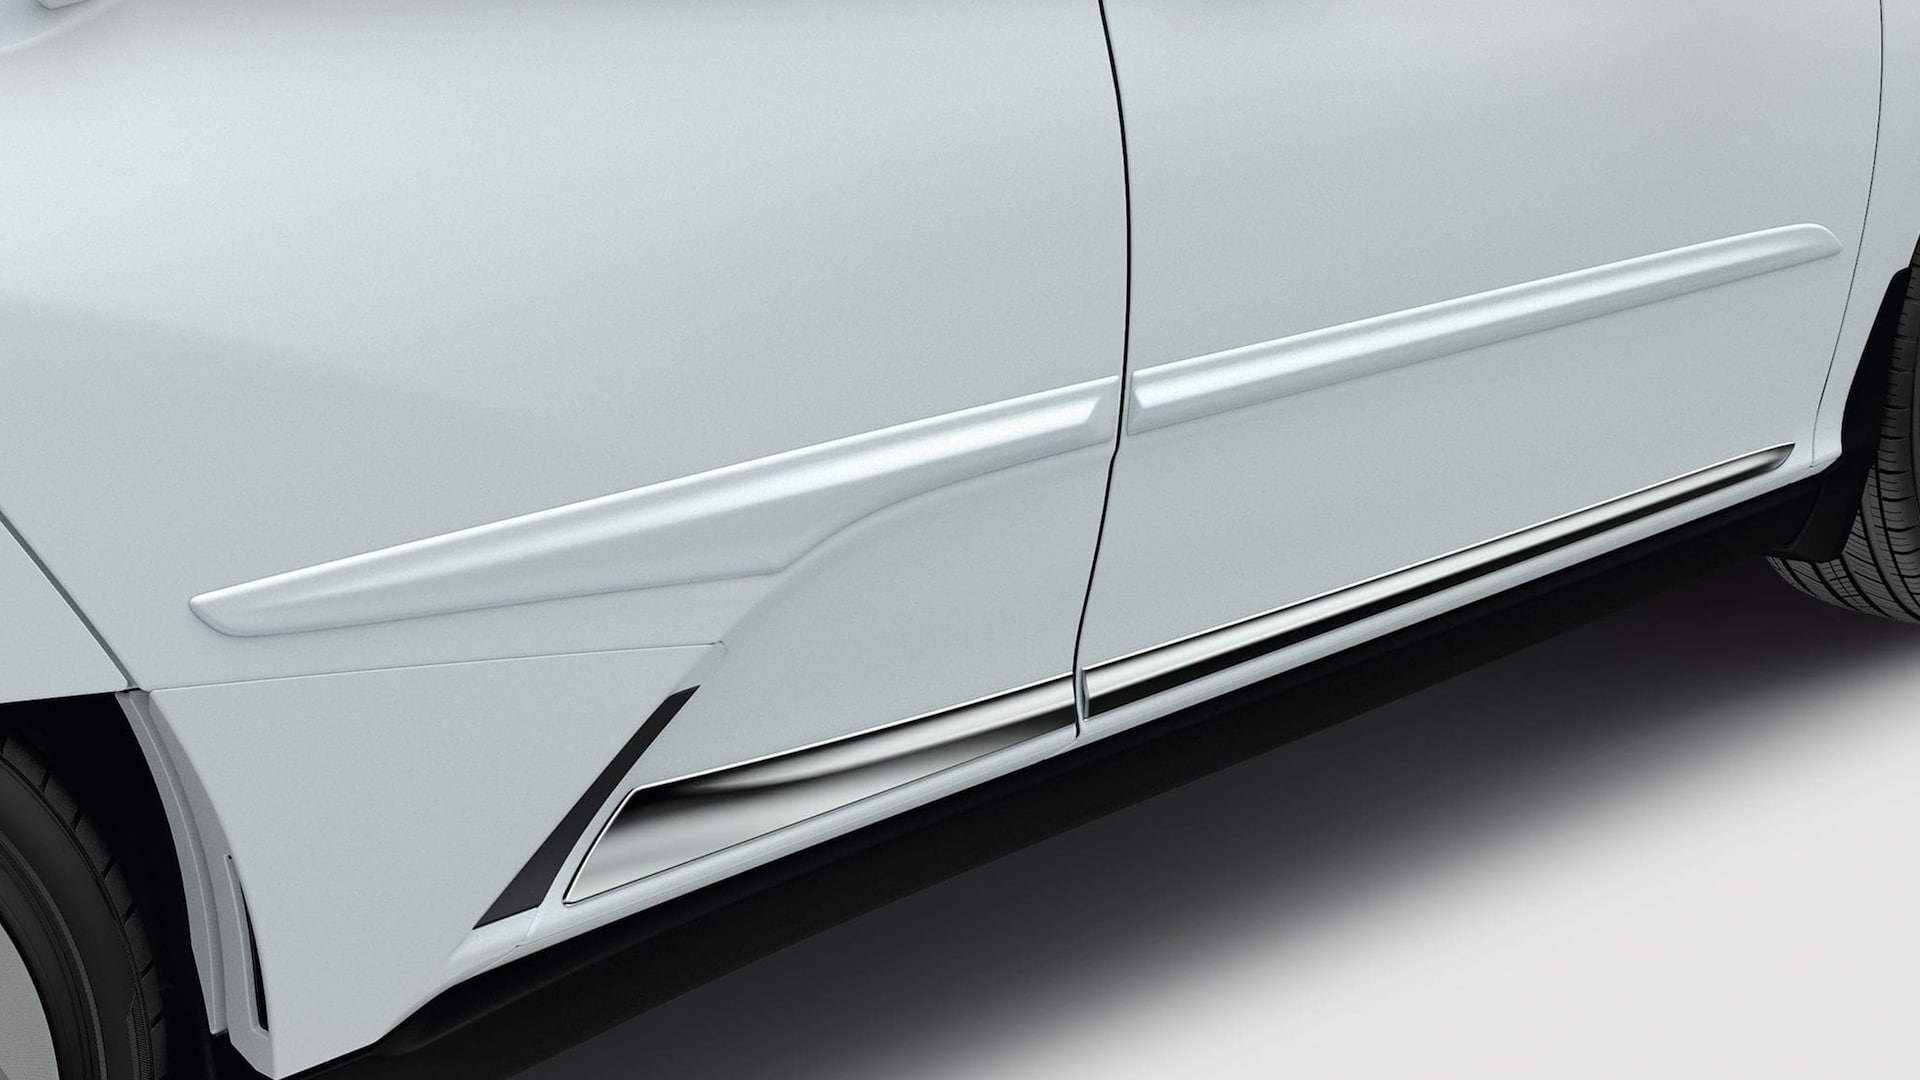 Honda Genuine Accessories body side molding.